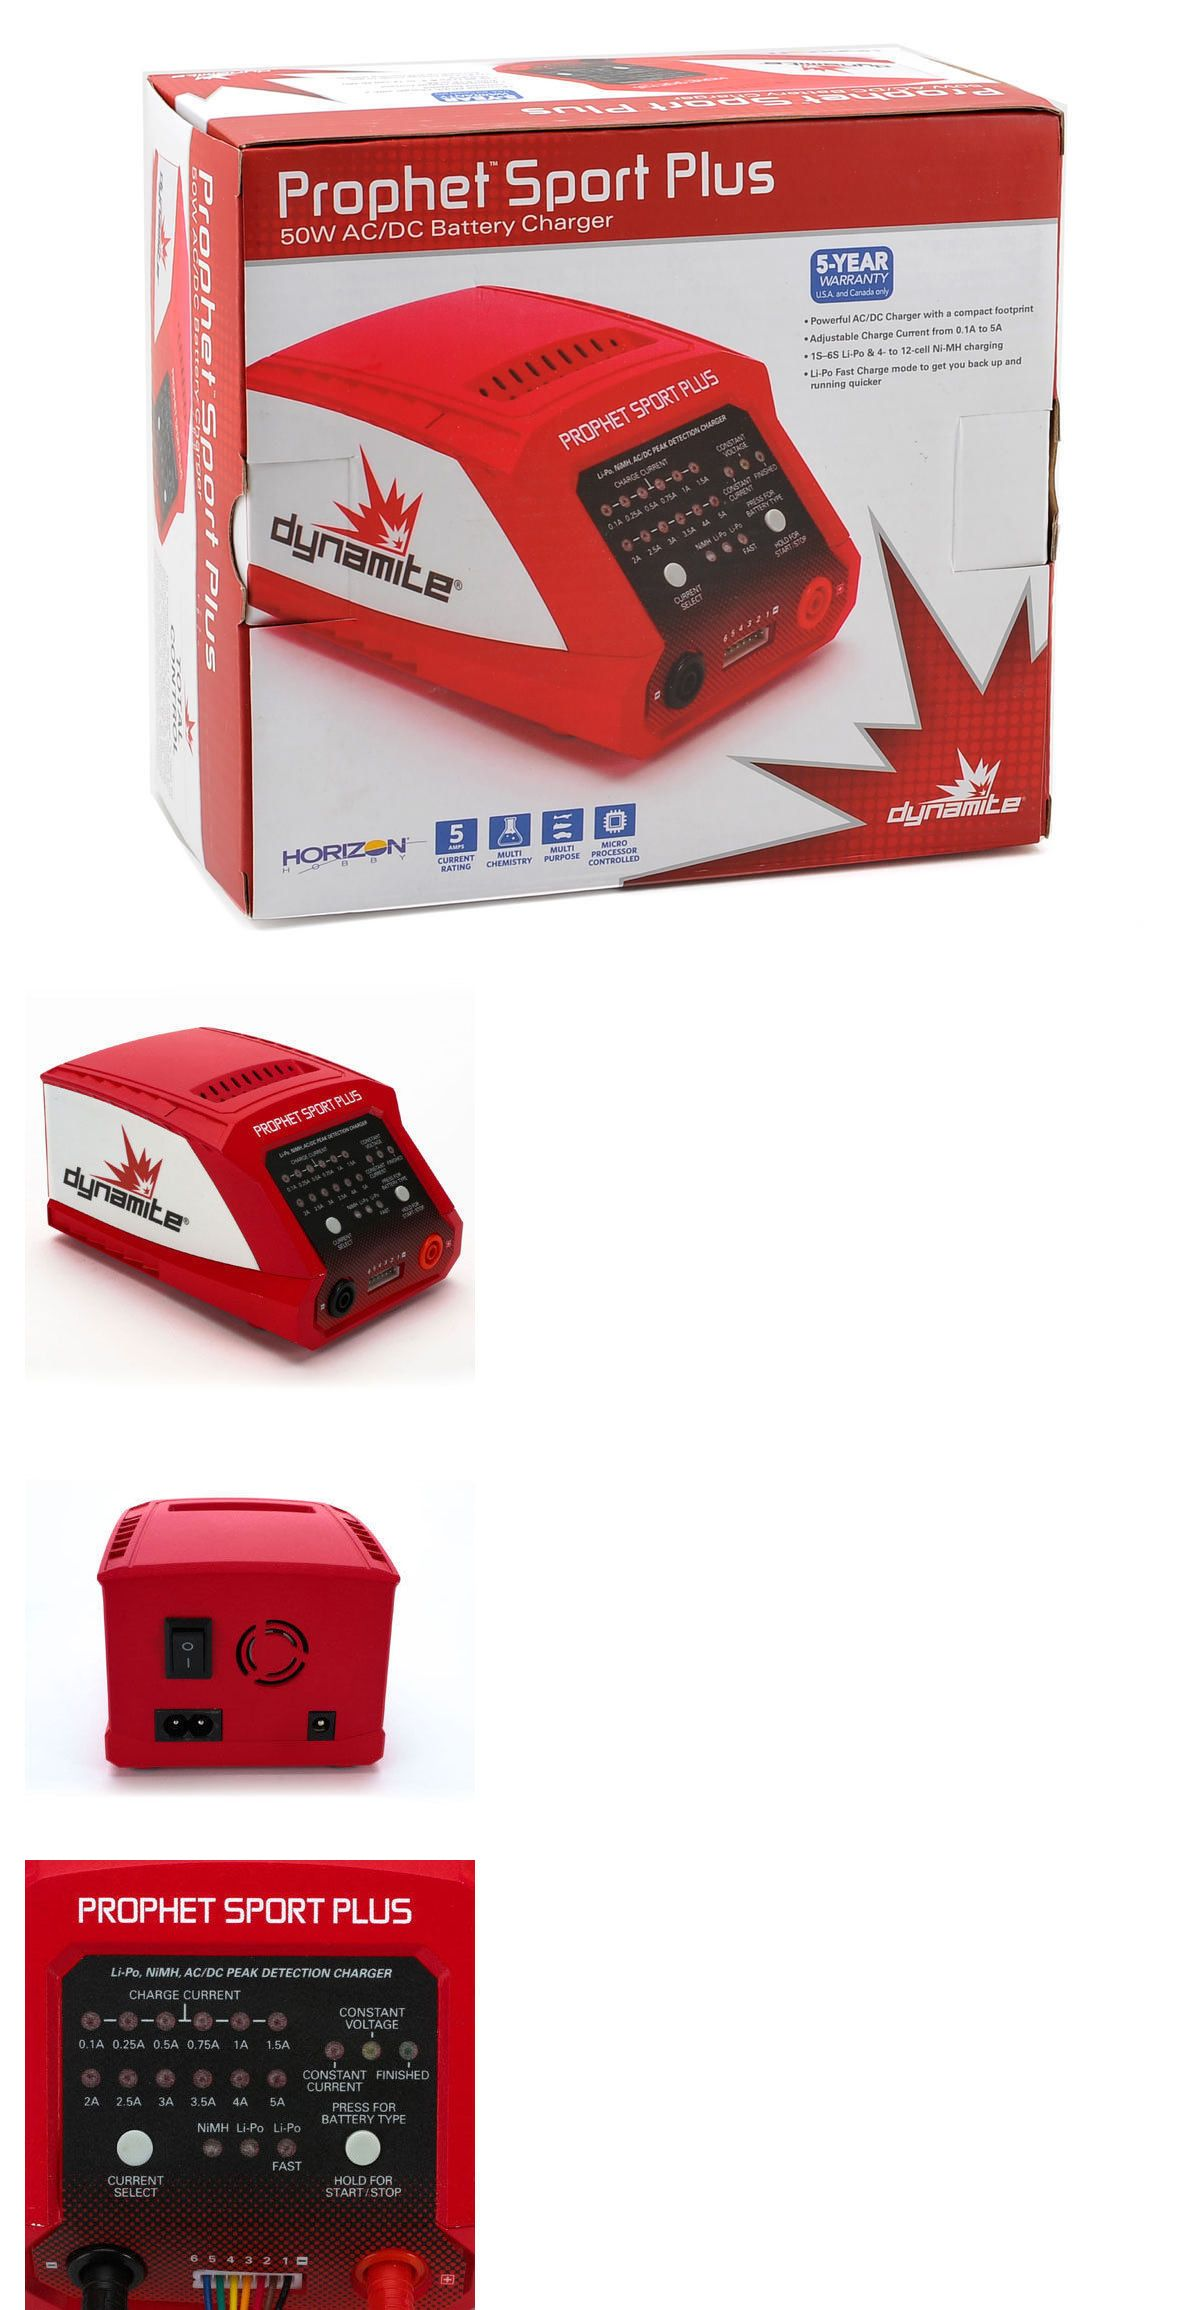 Hexfly HX-705 NIMH Fast Battery Charger up to 5A Charge Rate